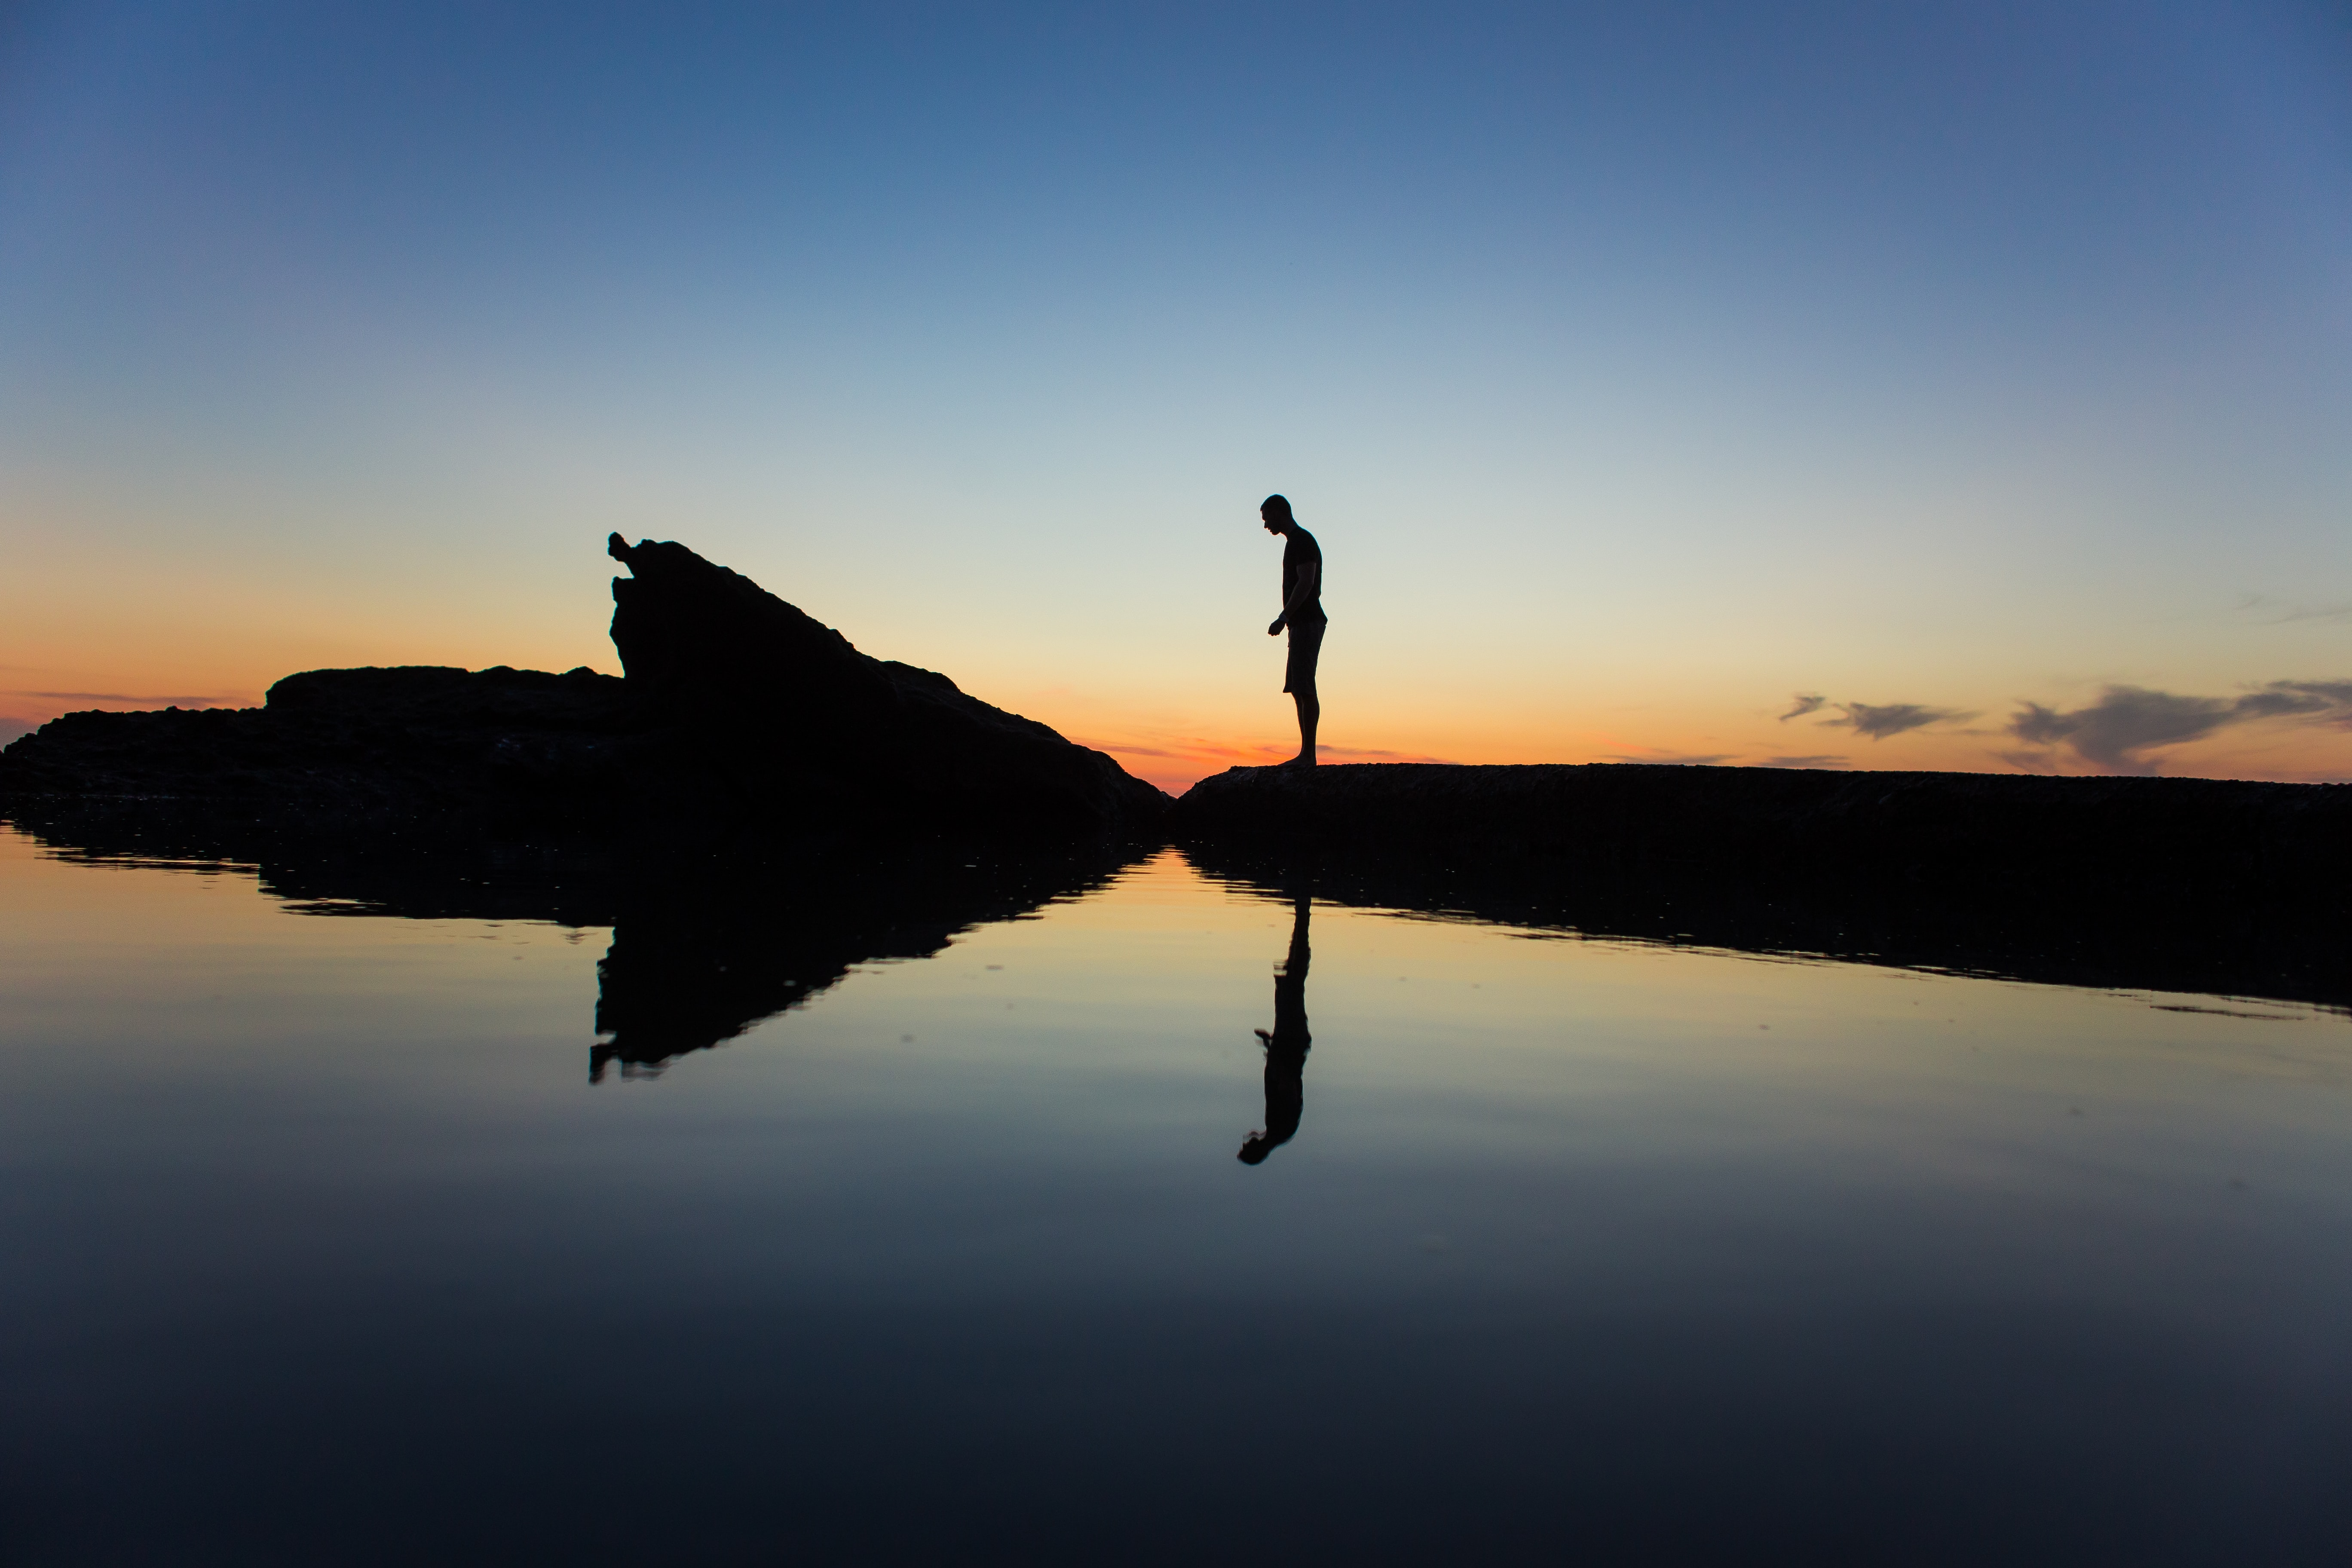 Man silhouette standing on the rock with reflection at Virginia Beach after sunset